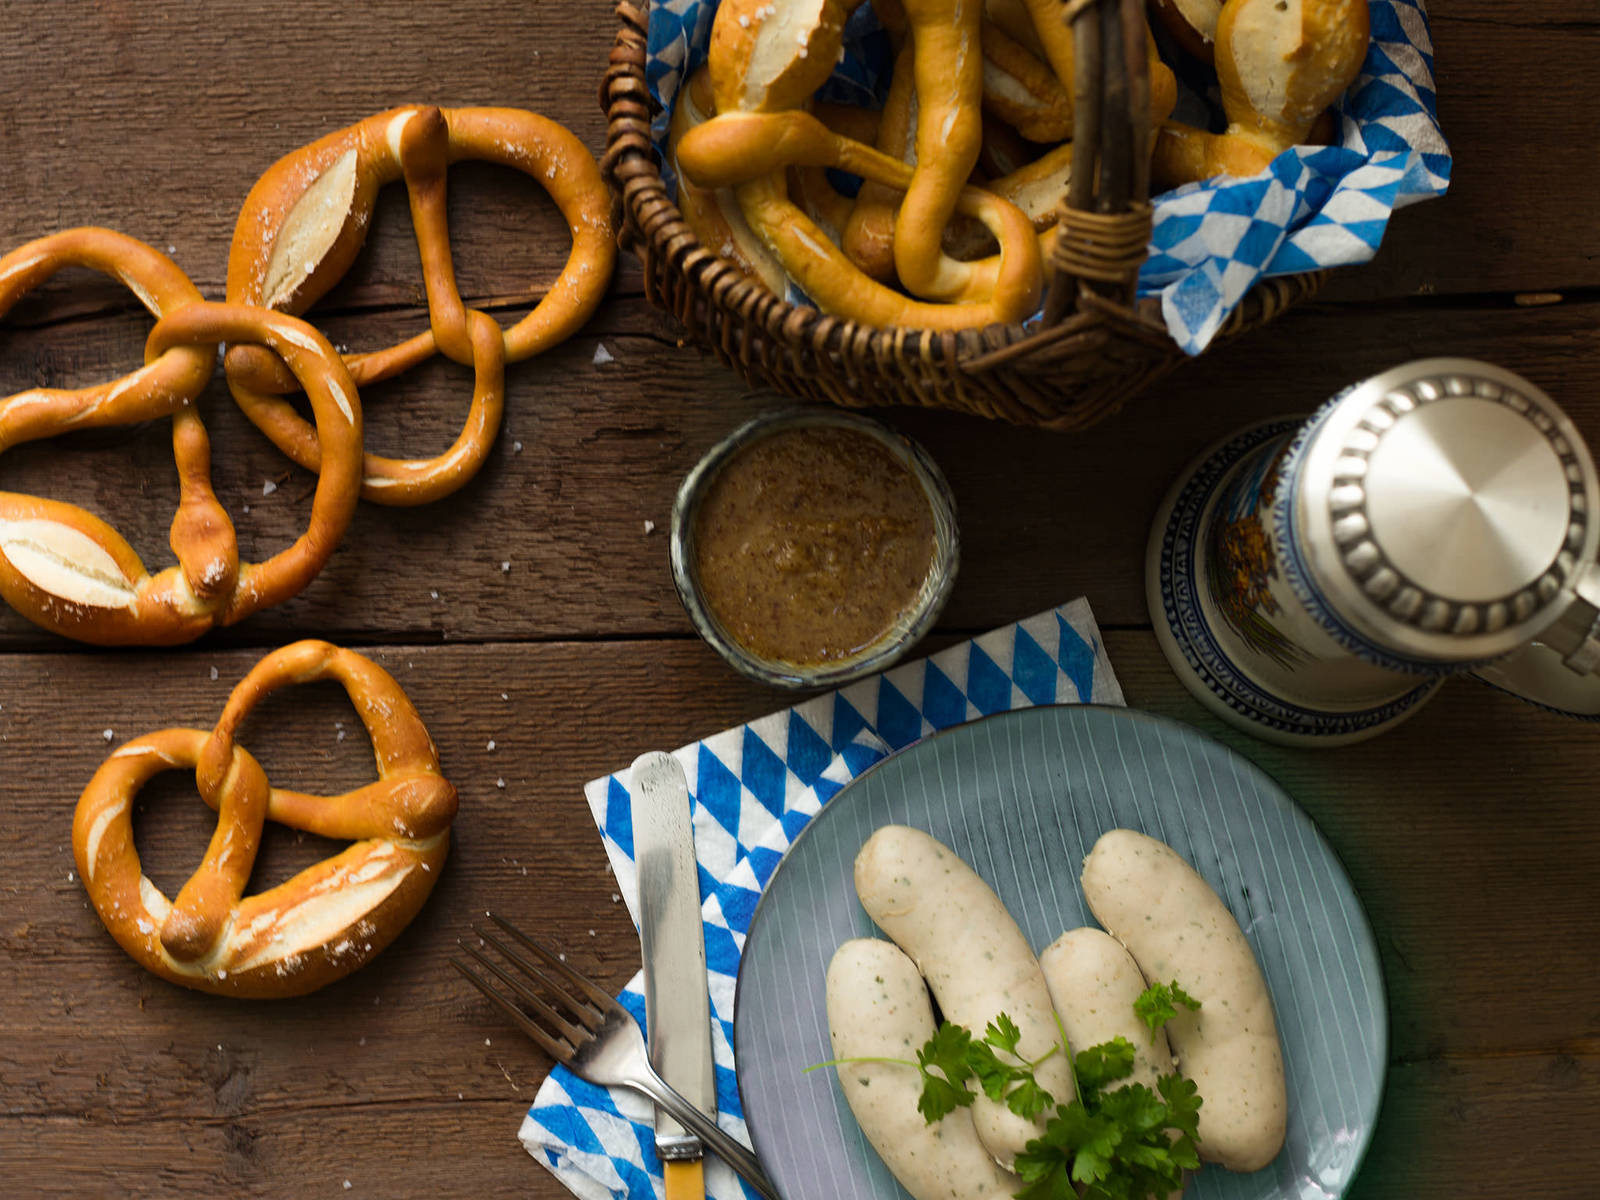 Soft pretzels and veal sausages